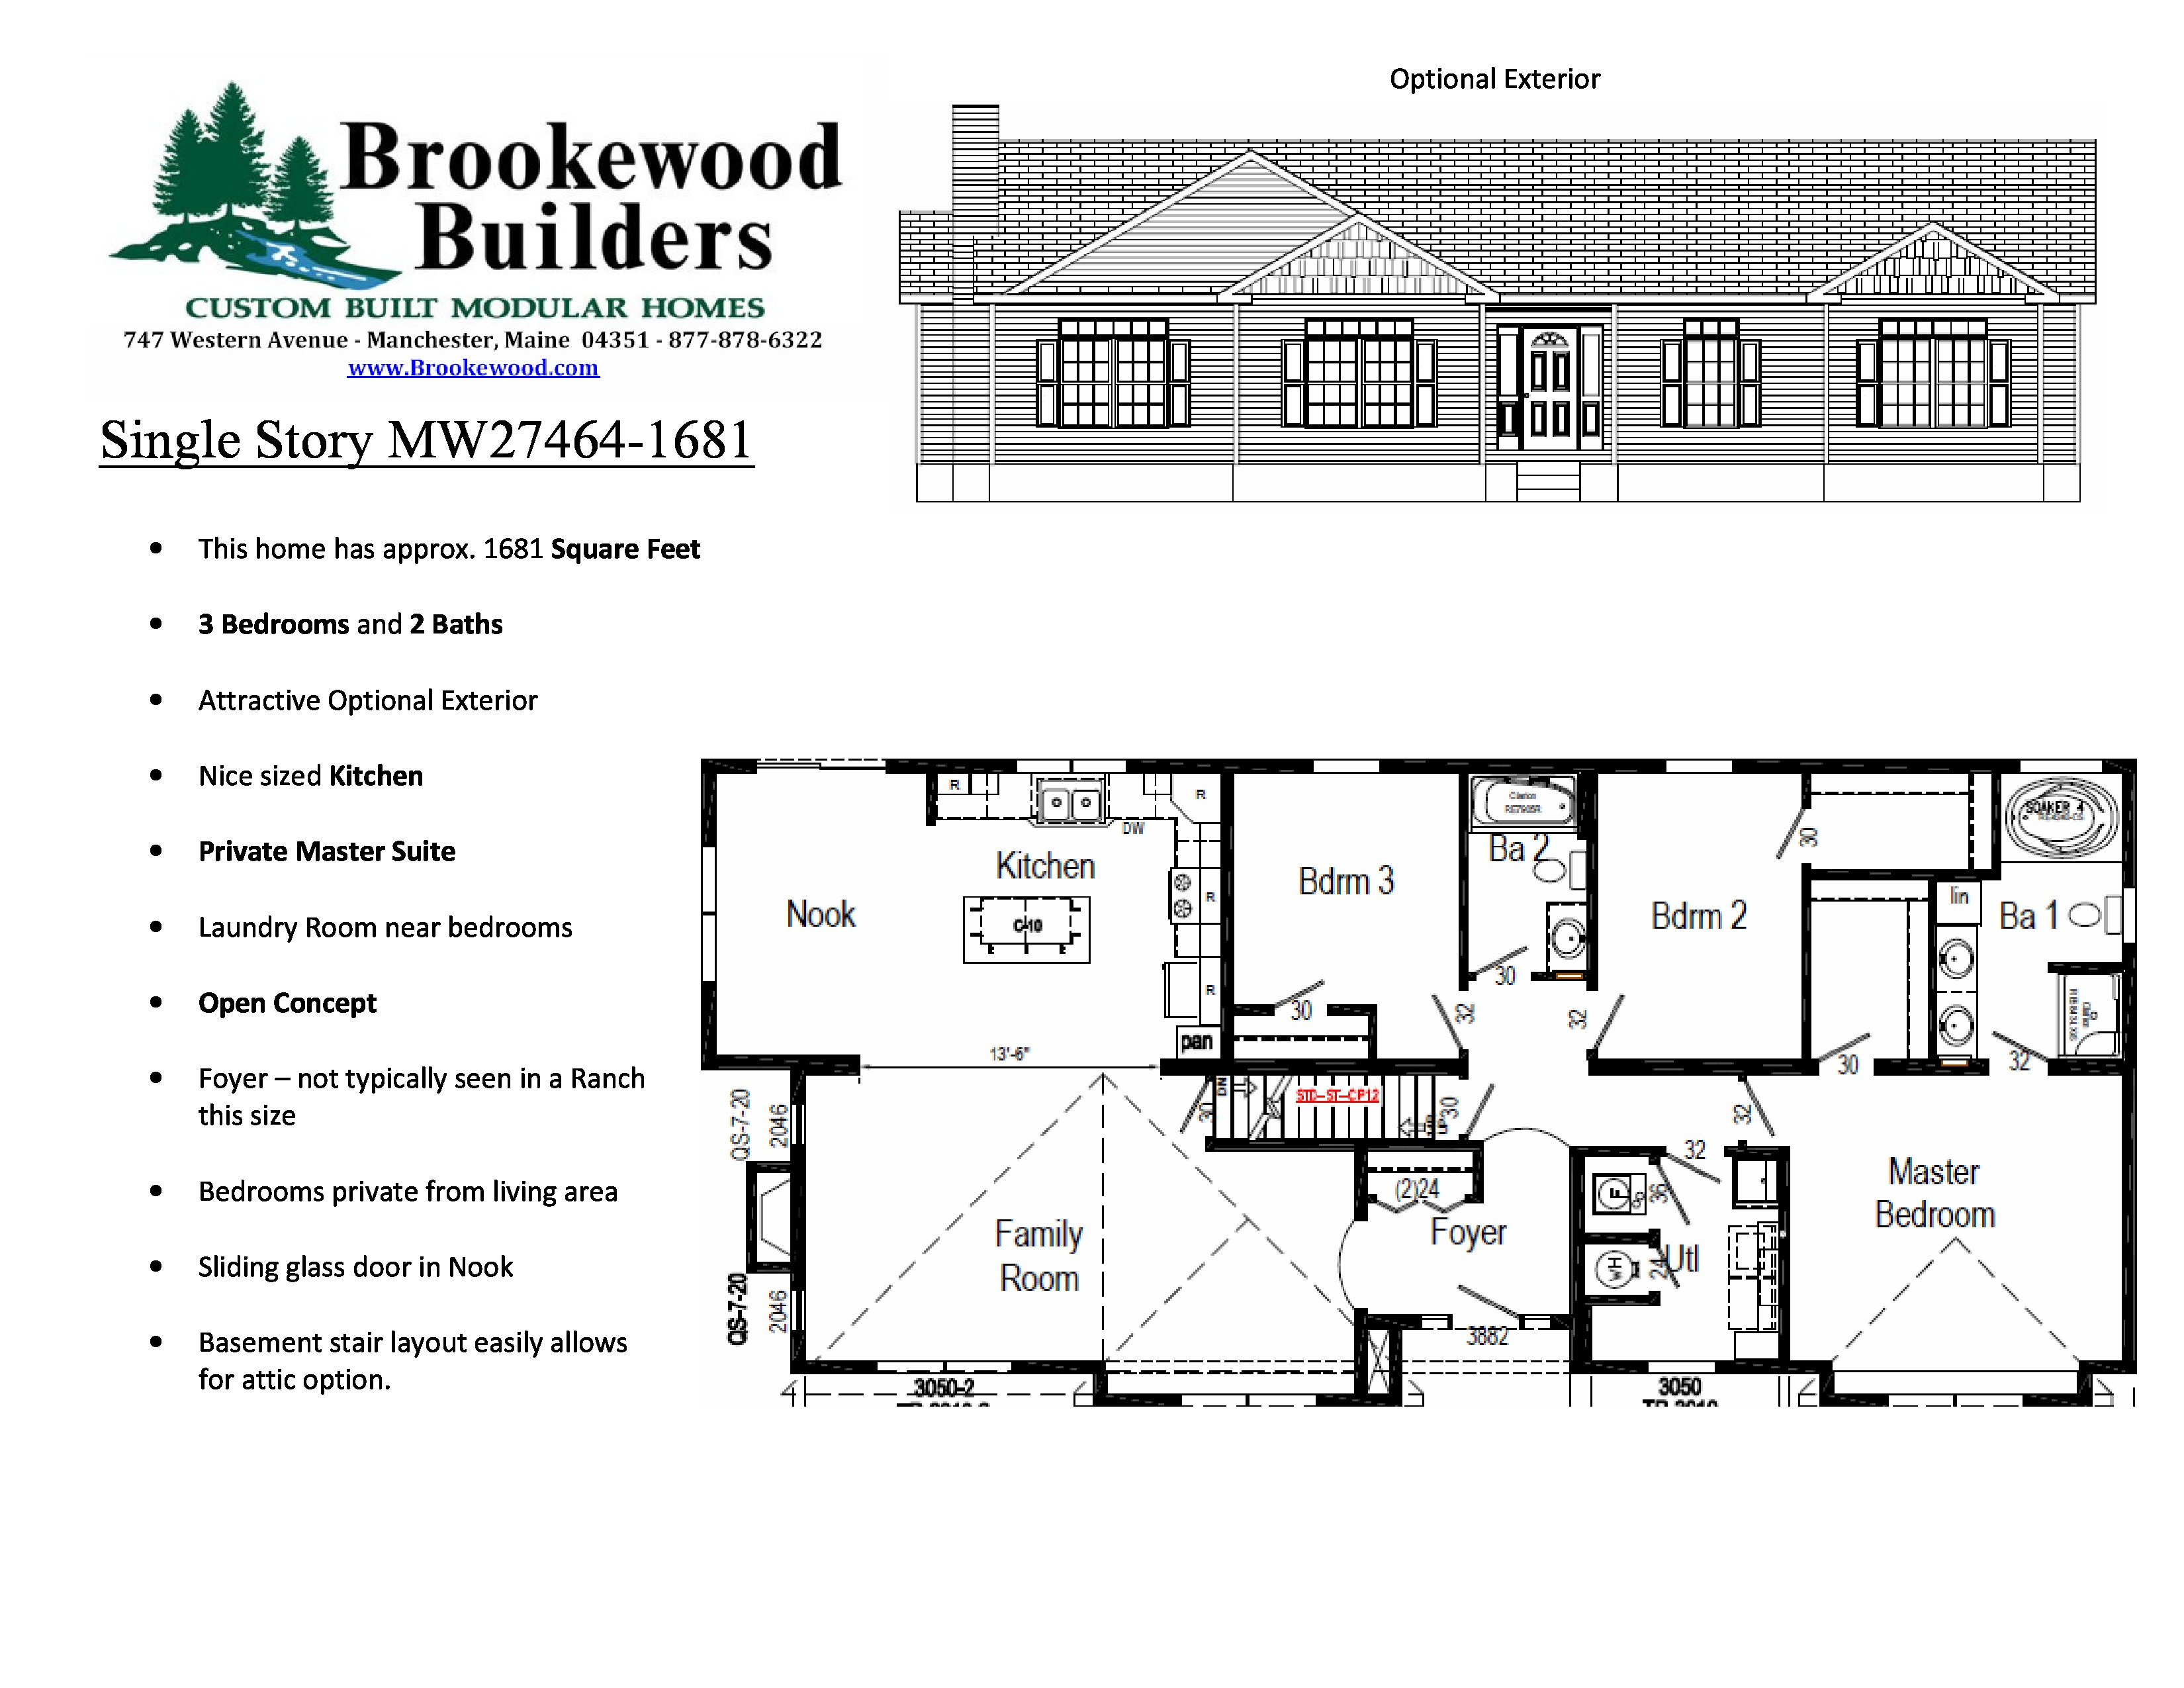 June 2013 – Plan of the Month | Brookewood Builders ... Rambler House Plans With Open Concept on open contemporary house plans, open floor plan house designs, open two-story house plans,